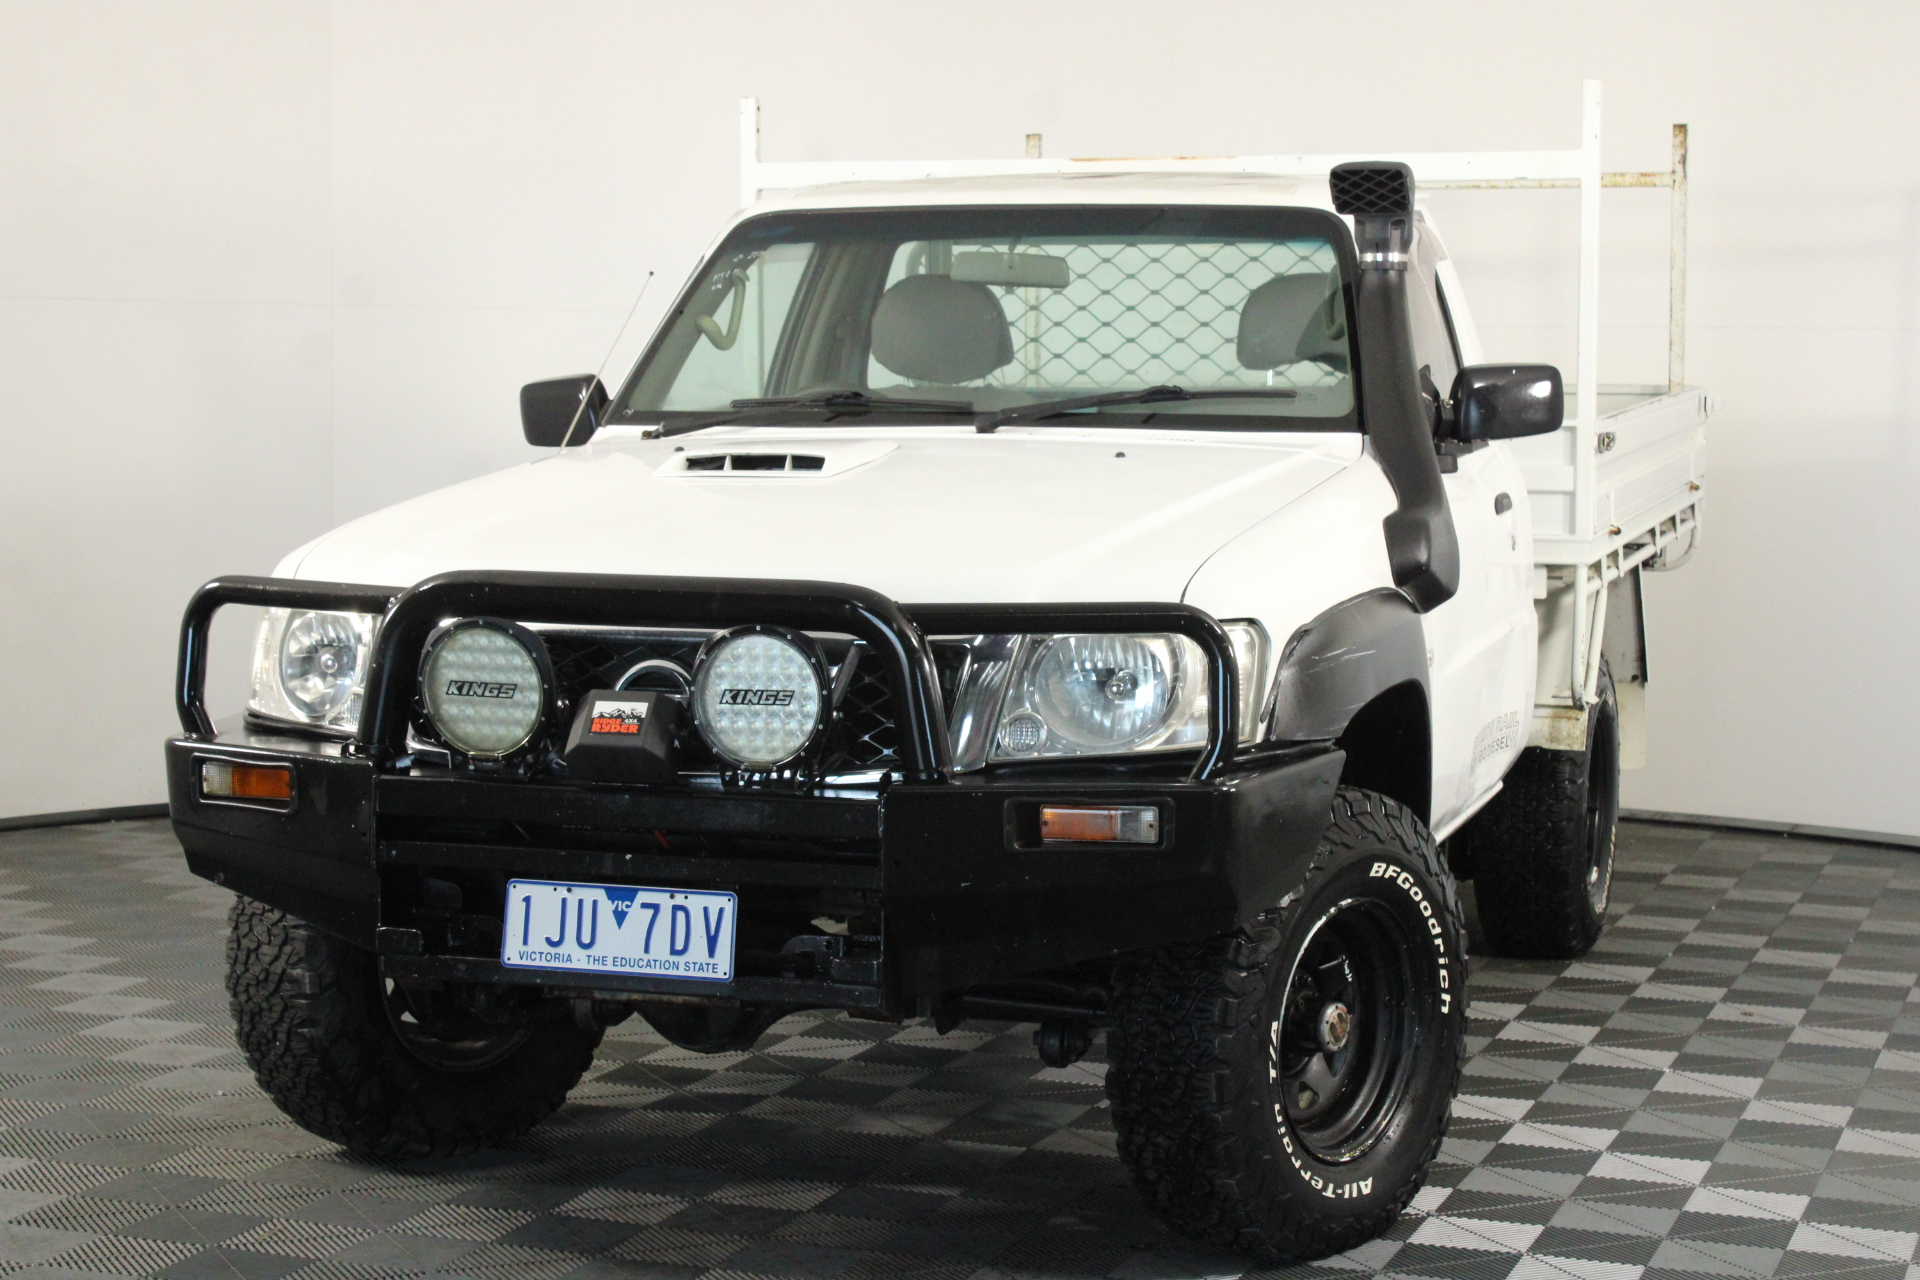 2010 Nissan Patrol DX (4x4) GU Turbo Diesel Manual Cab Chassis